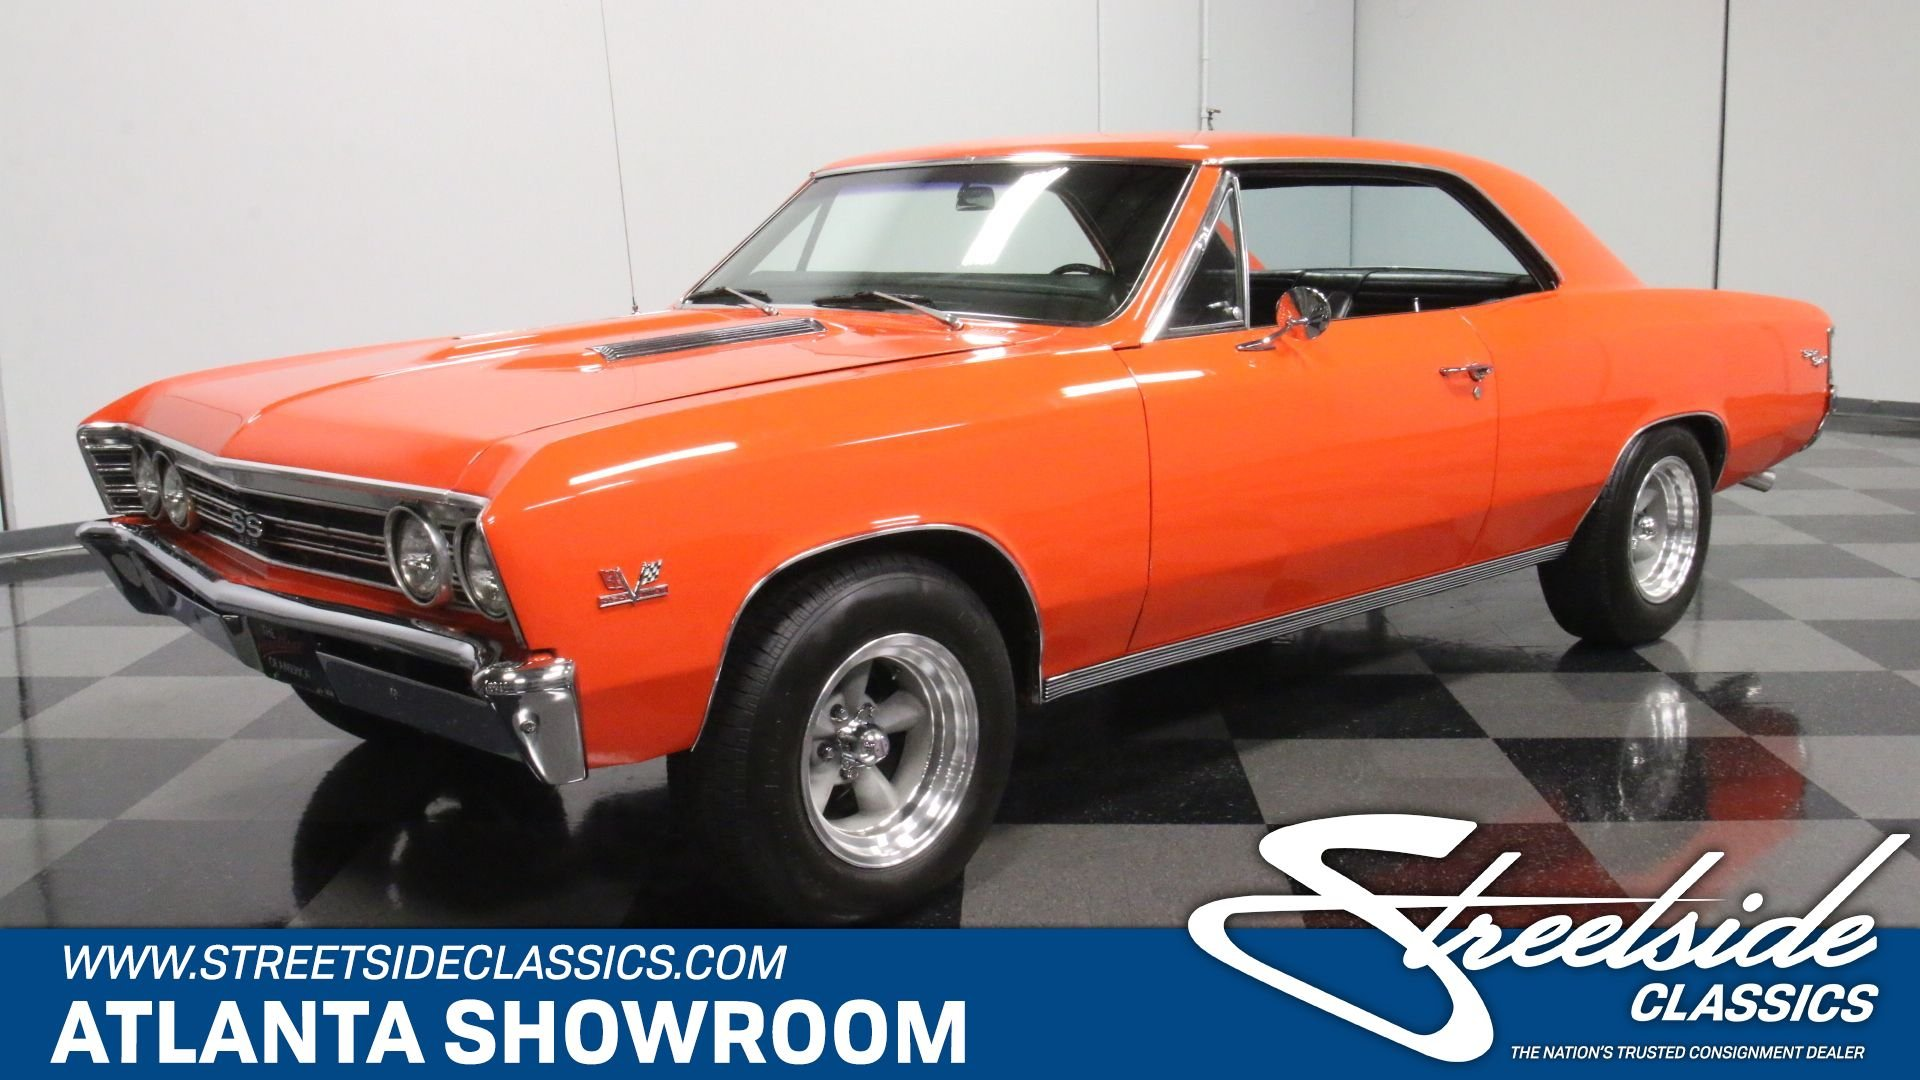 1967 Chevrolet Chevelle SS Tribute for sale #165550   Motorious